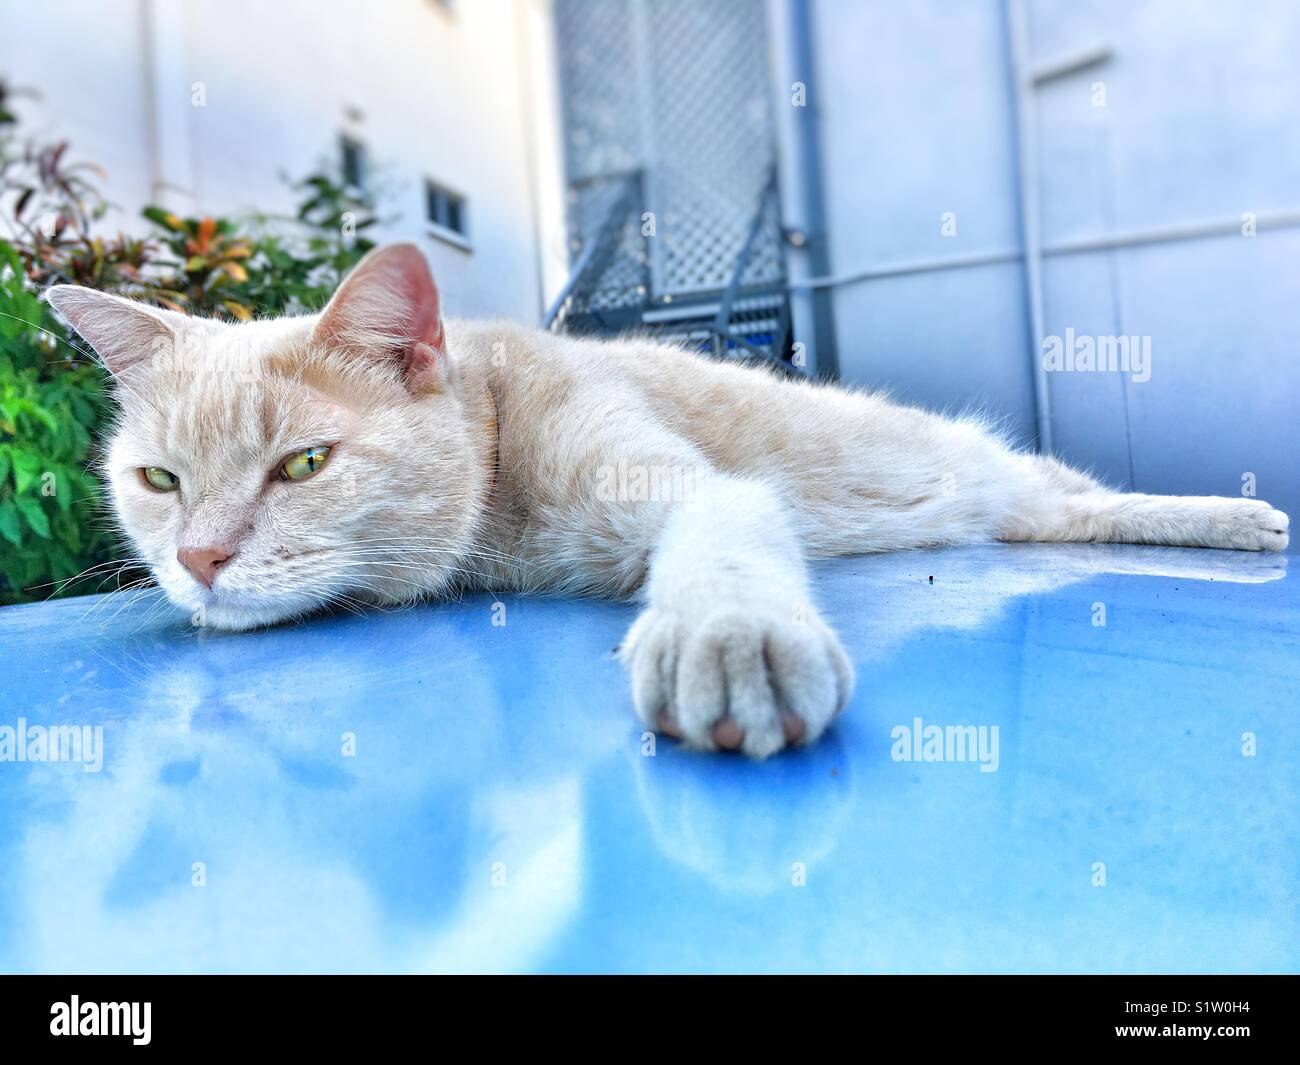 Cat on the roof of a car. - Stock Image